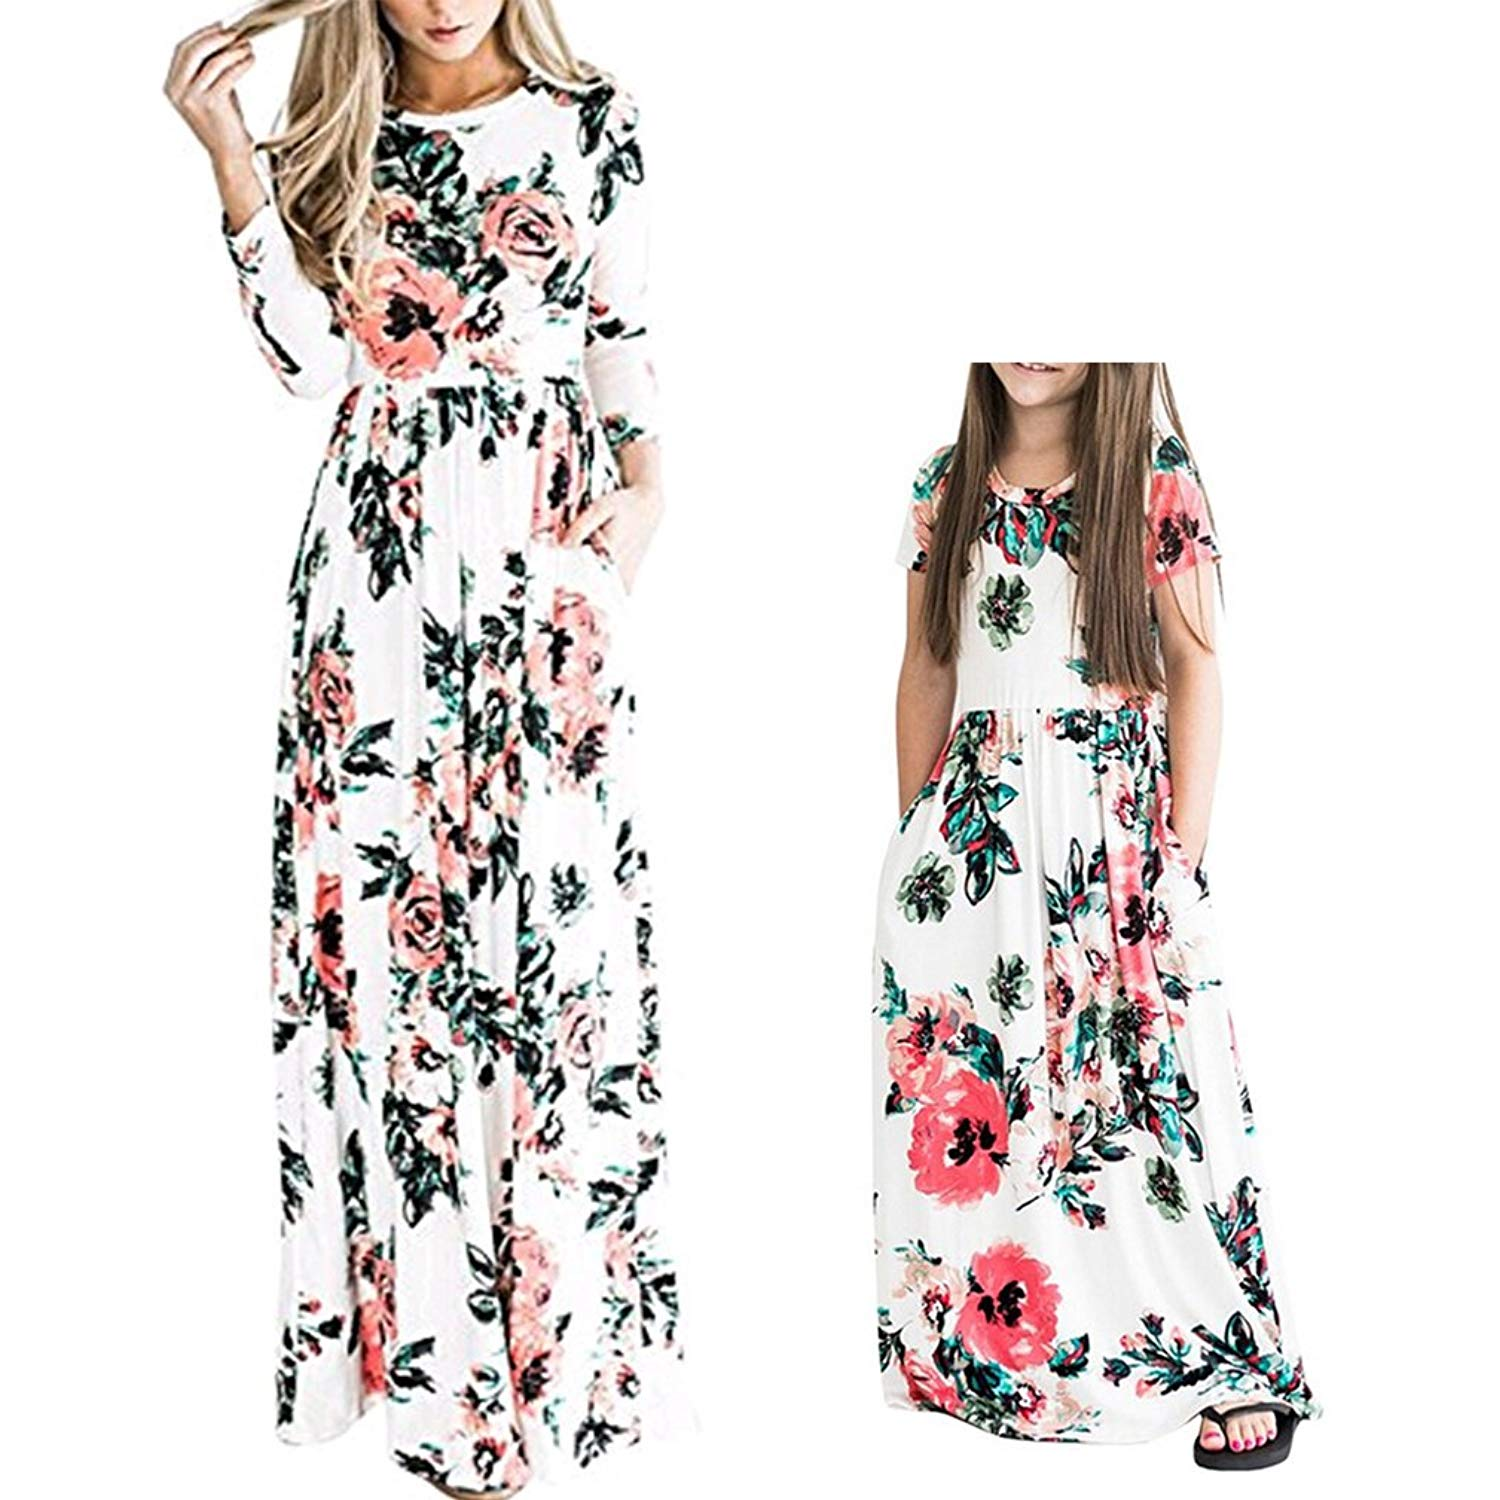 503e115d5a76 Get Quotations · Mommy and Me Maxi Dresses Bohemia Floral Printed Matching  Dresses for Daughter and Mom